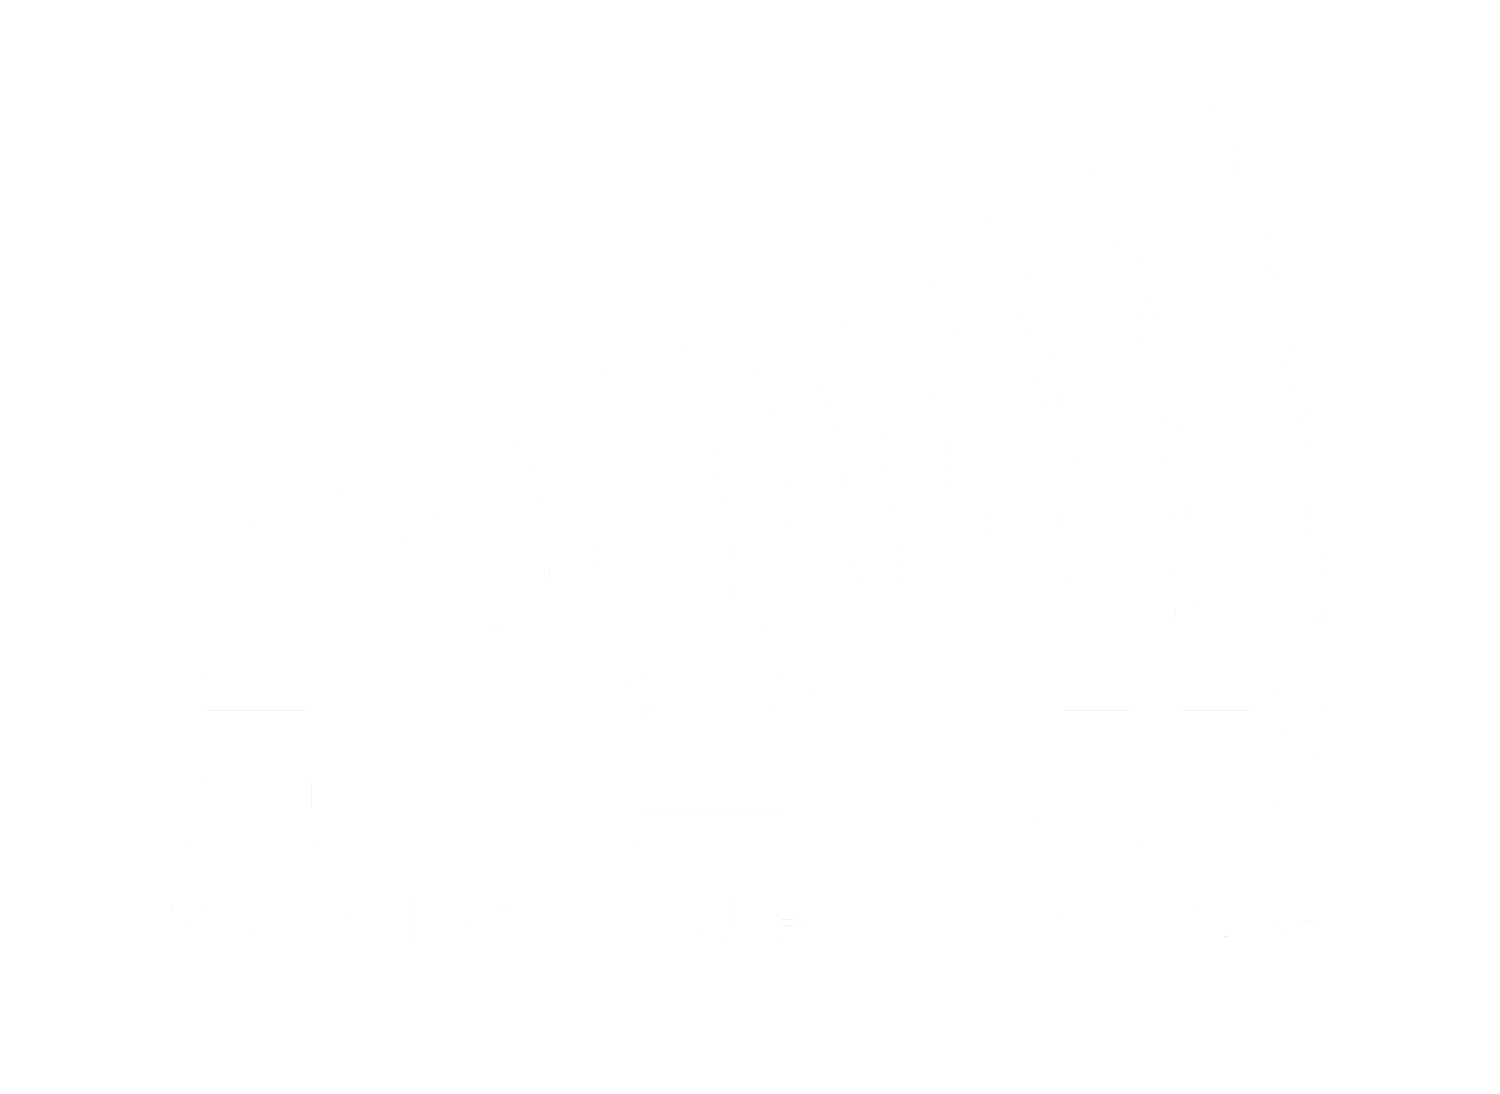 SHOUT! Publishing